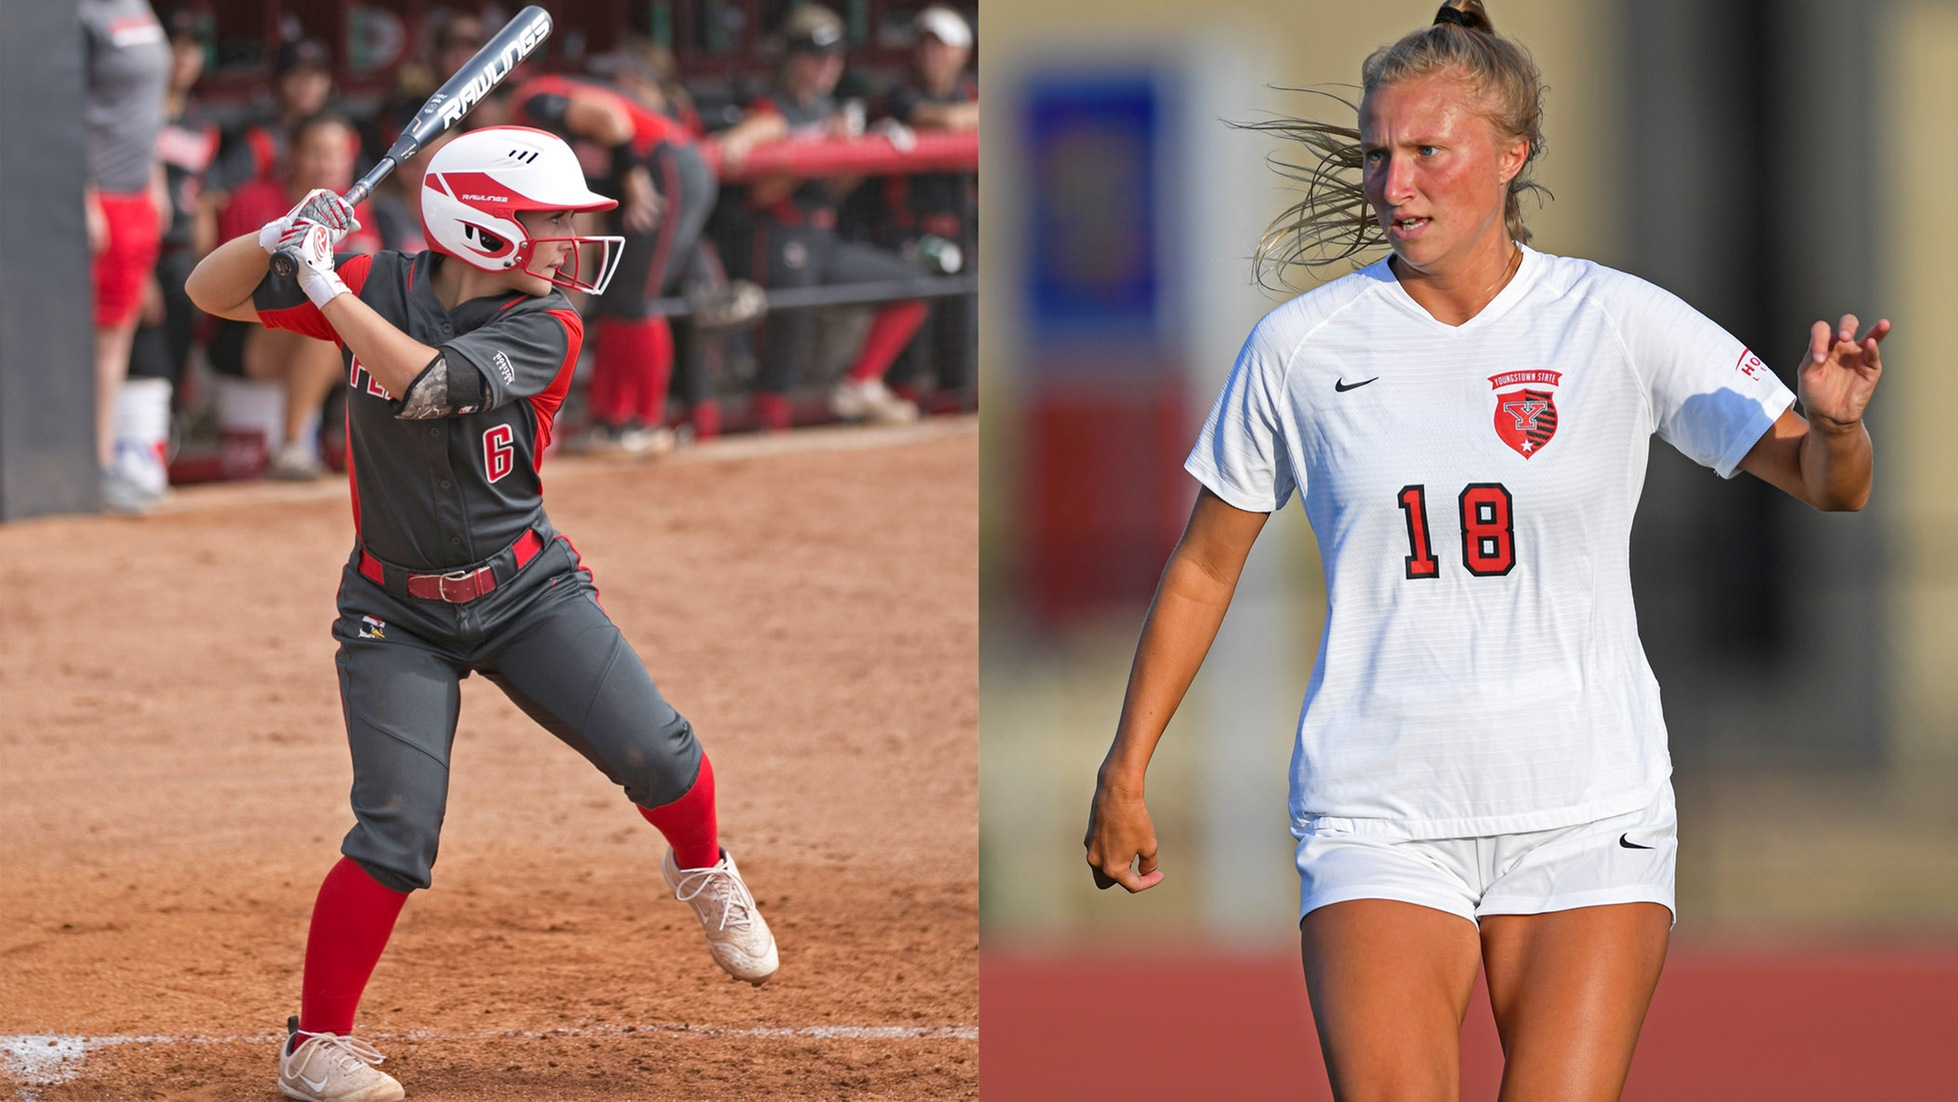 YSU Softball, Women's Soccer Team Up For Cancer Research